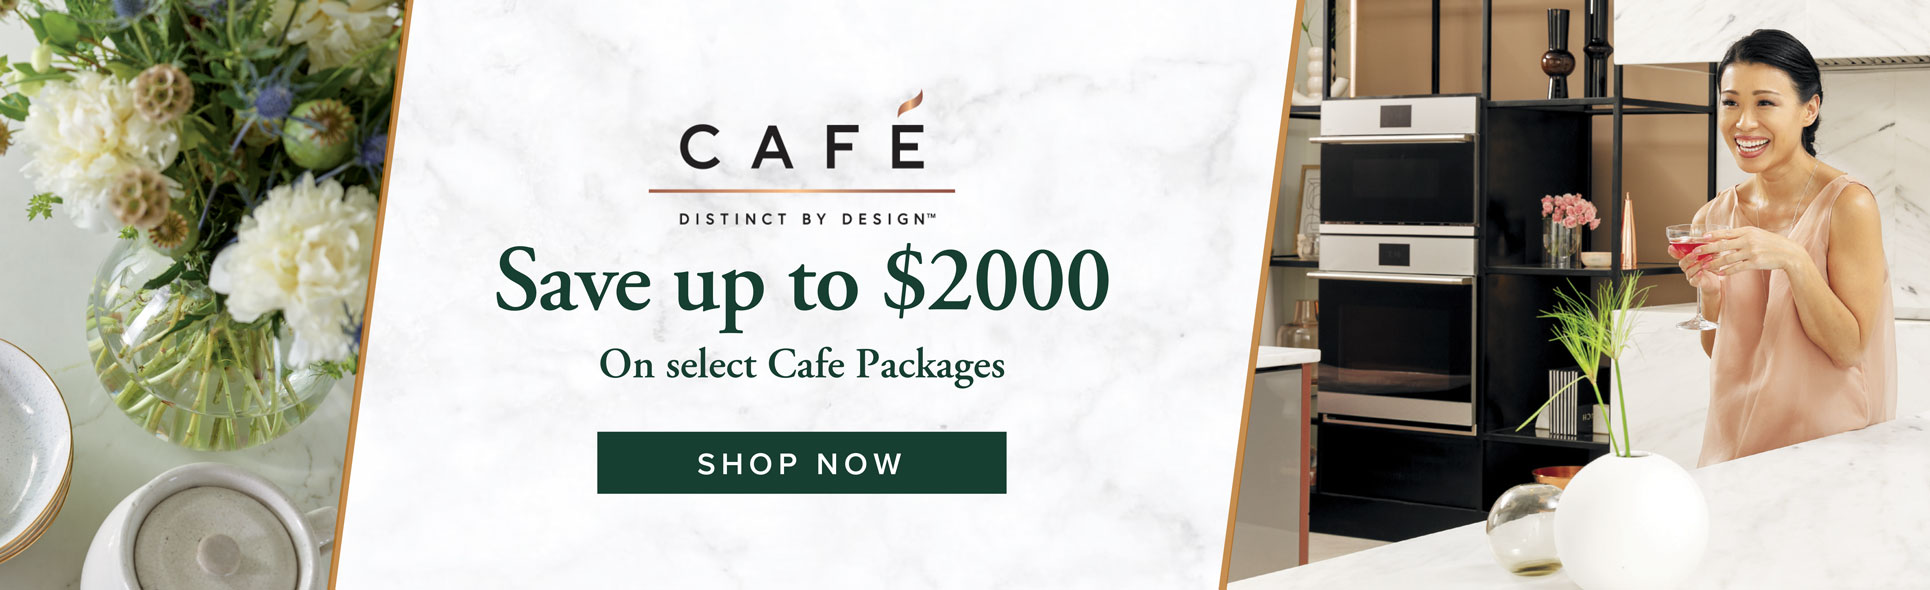 cafe appliances for remodeling projects at bray and scarff